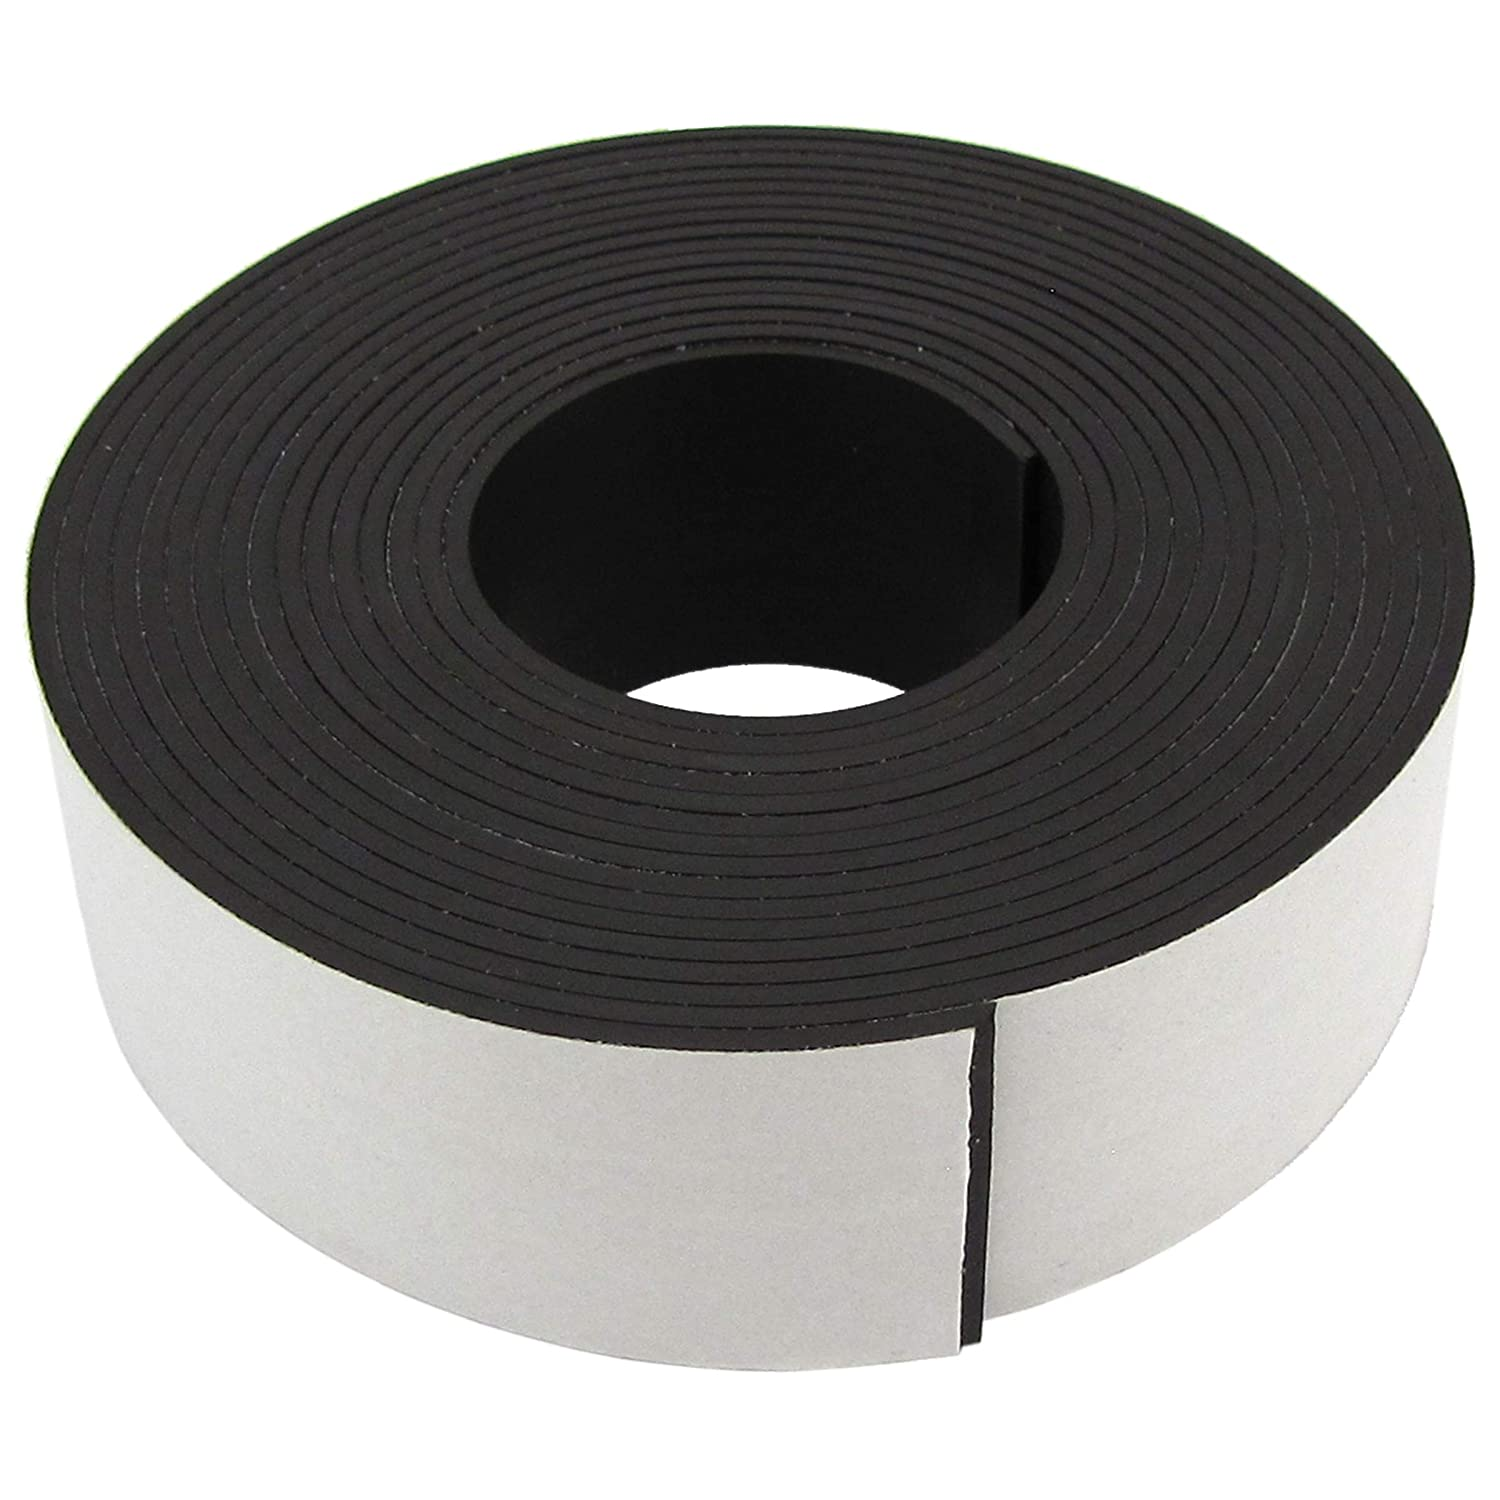 Master Magnetics Magnet Tape, One Side Adhesive Magnetic Tape, 1/16 Thick x 1 Wide x 10 Feet (1 roll), 07019 Magnet Source